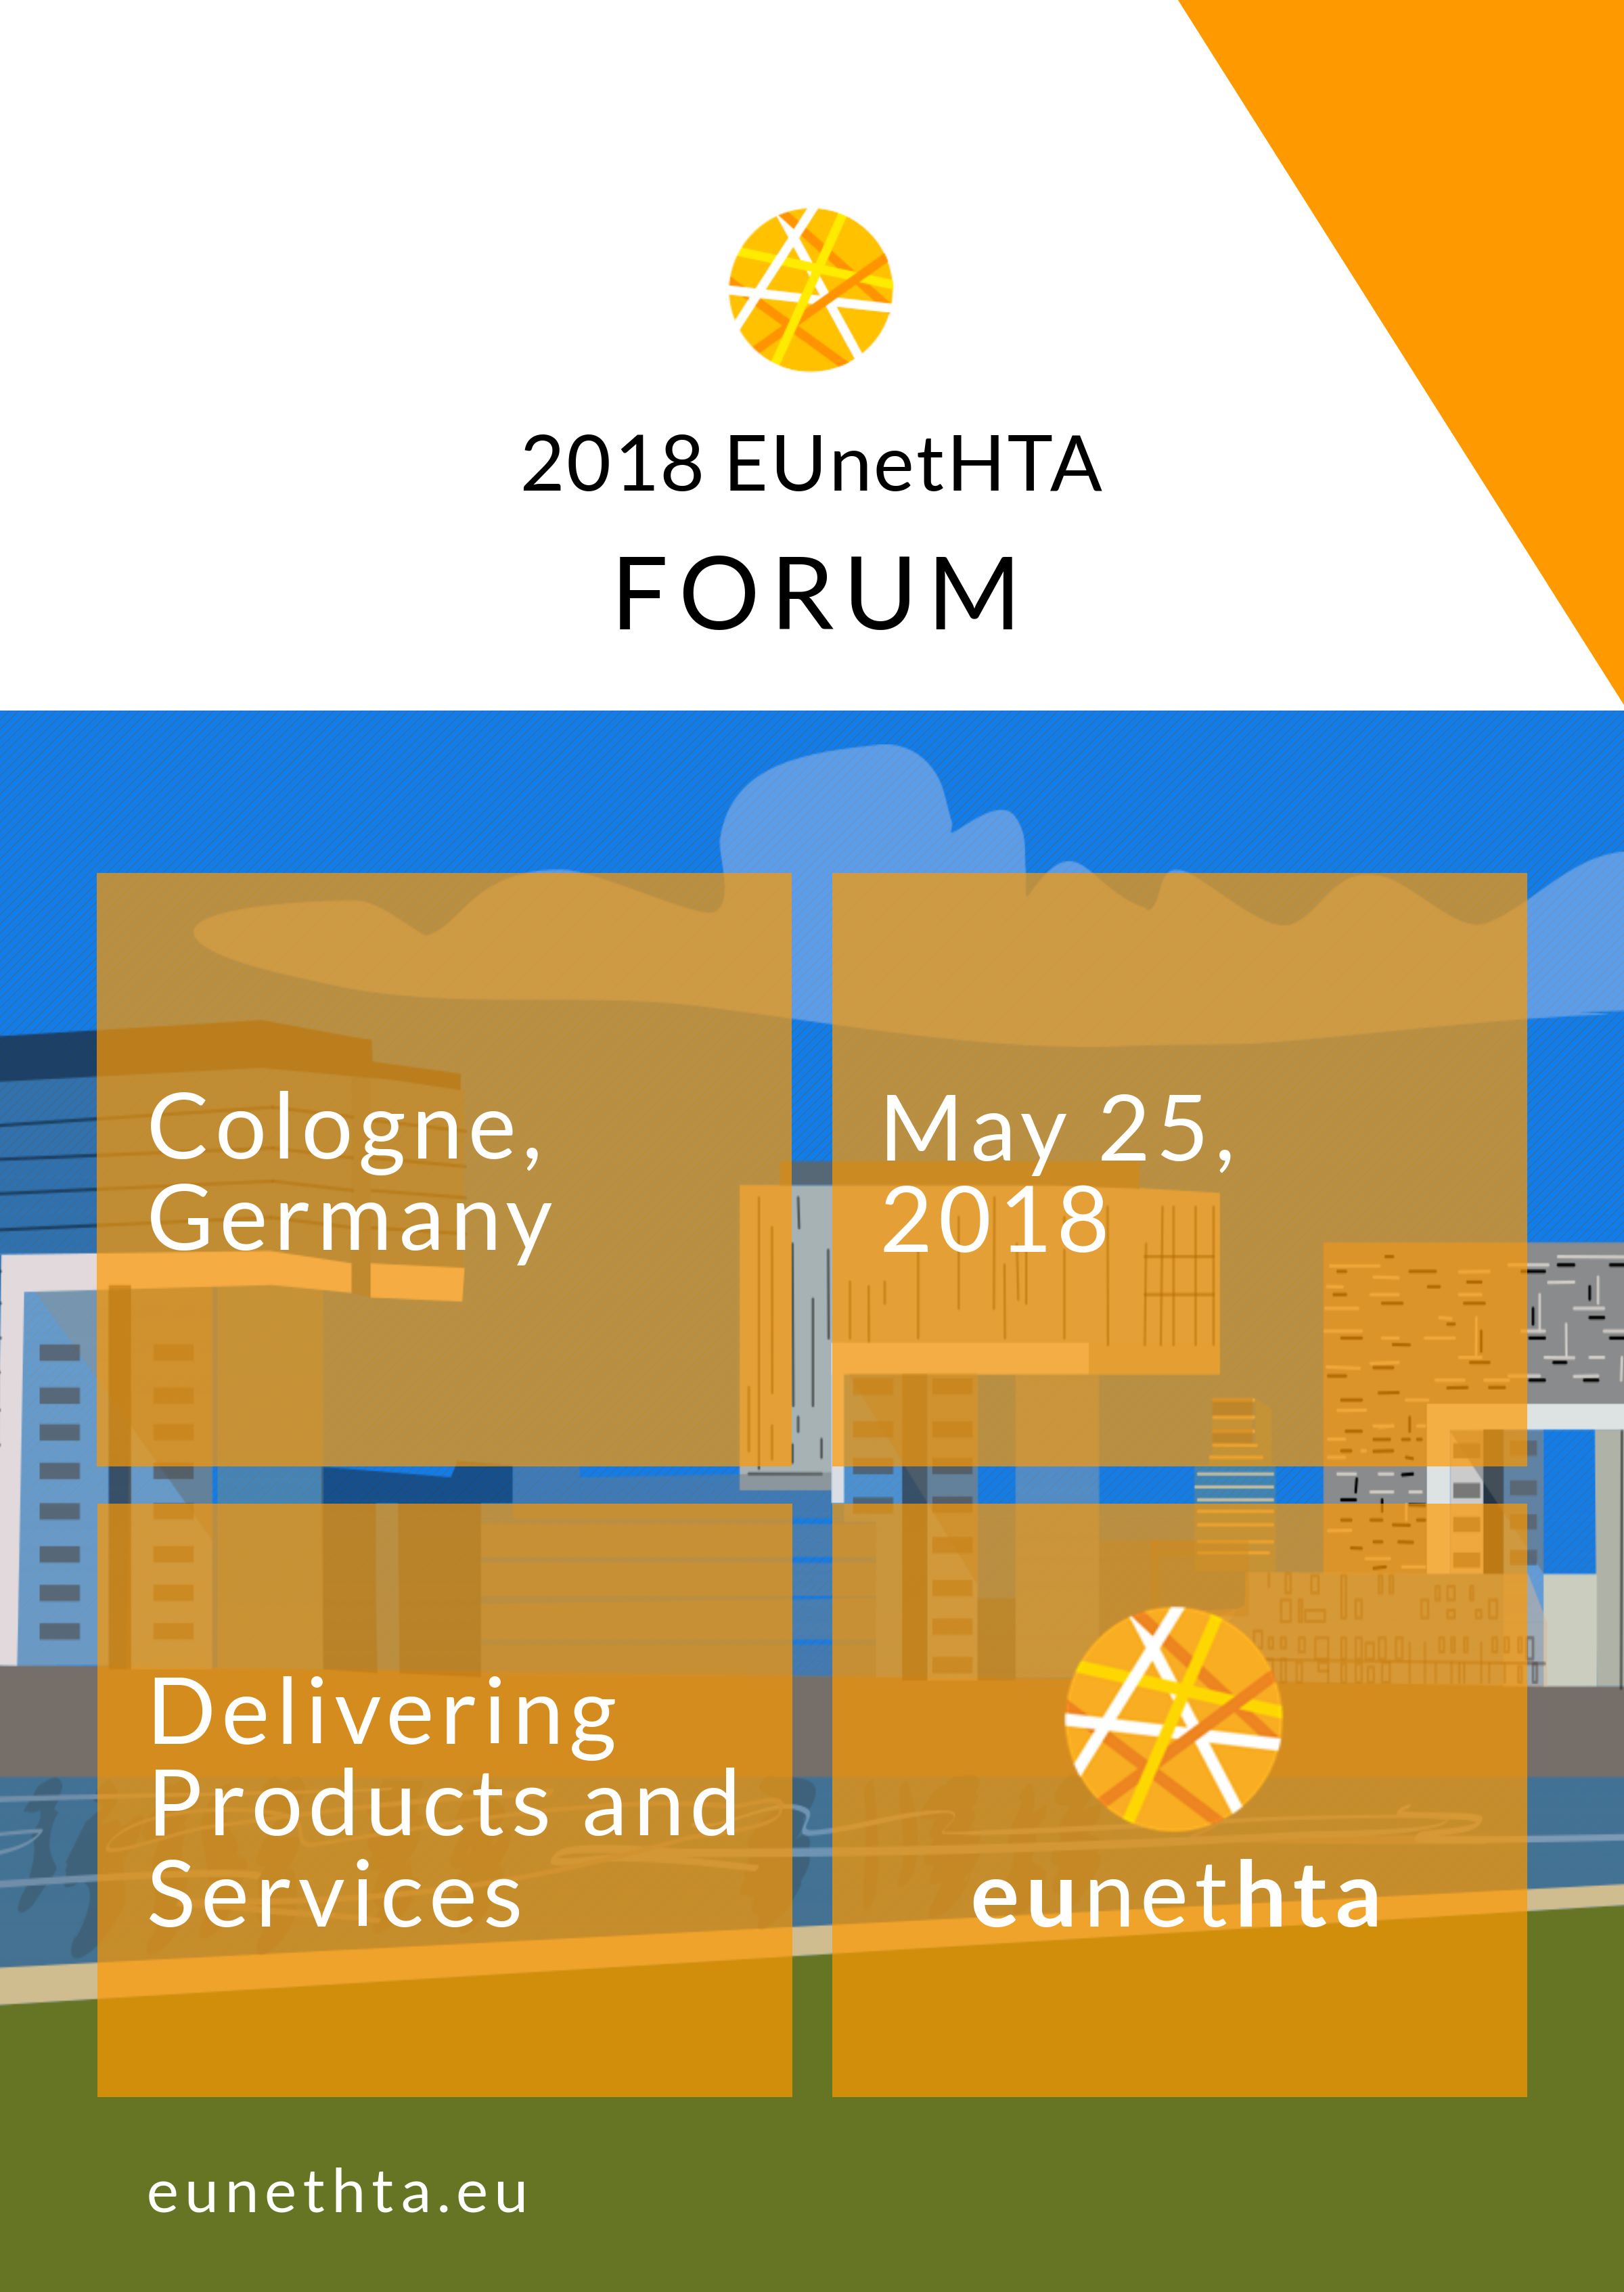 EUnetHTA Forum Agenda Now Available (May 25th, 2018 – Cologne, Germany)